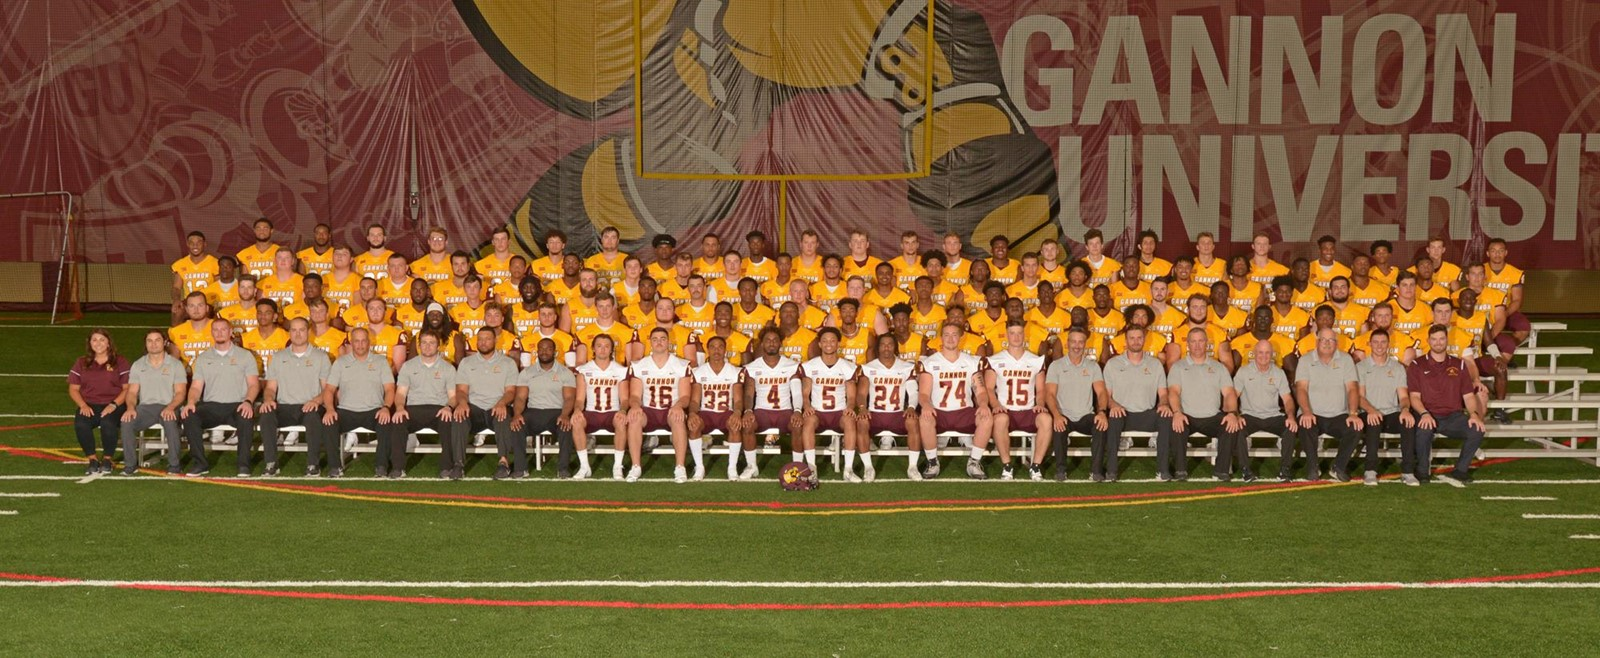 2019 Football Roster - Gannon University Athletics